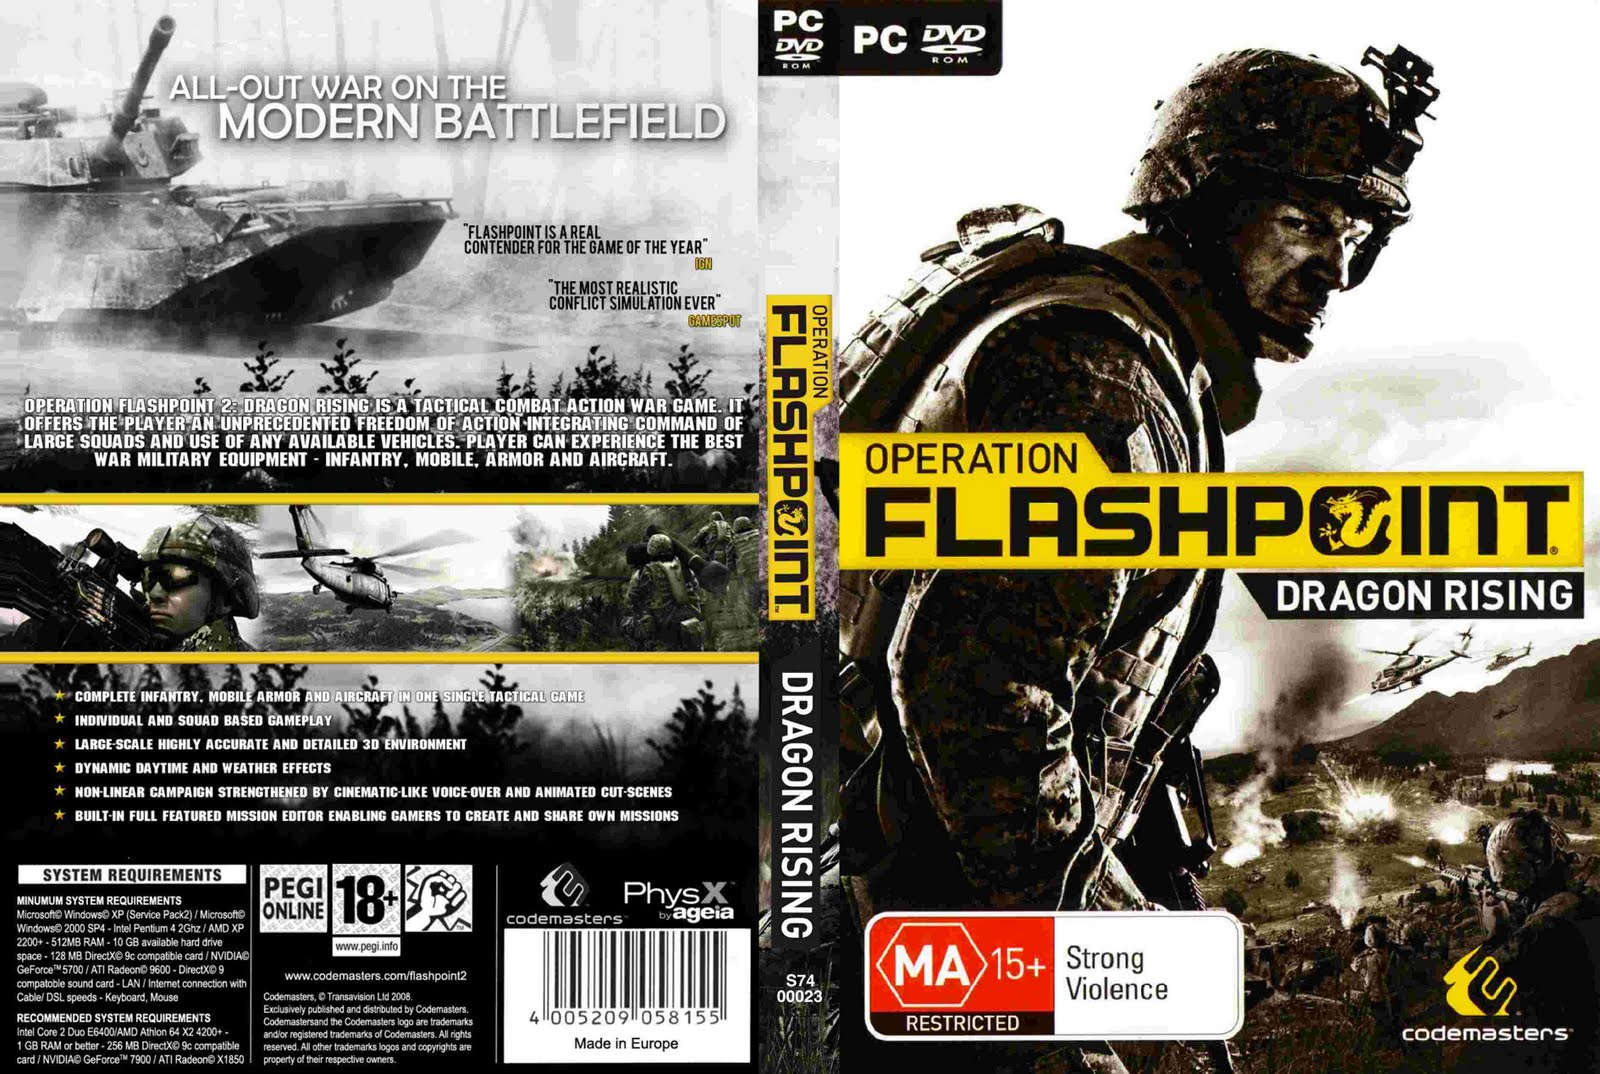 http://capasecovers.files.wordpress.com/2010/01/operationflashpointdragonrising-pc.jpg